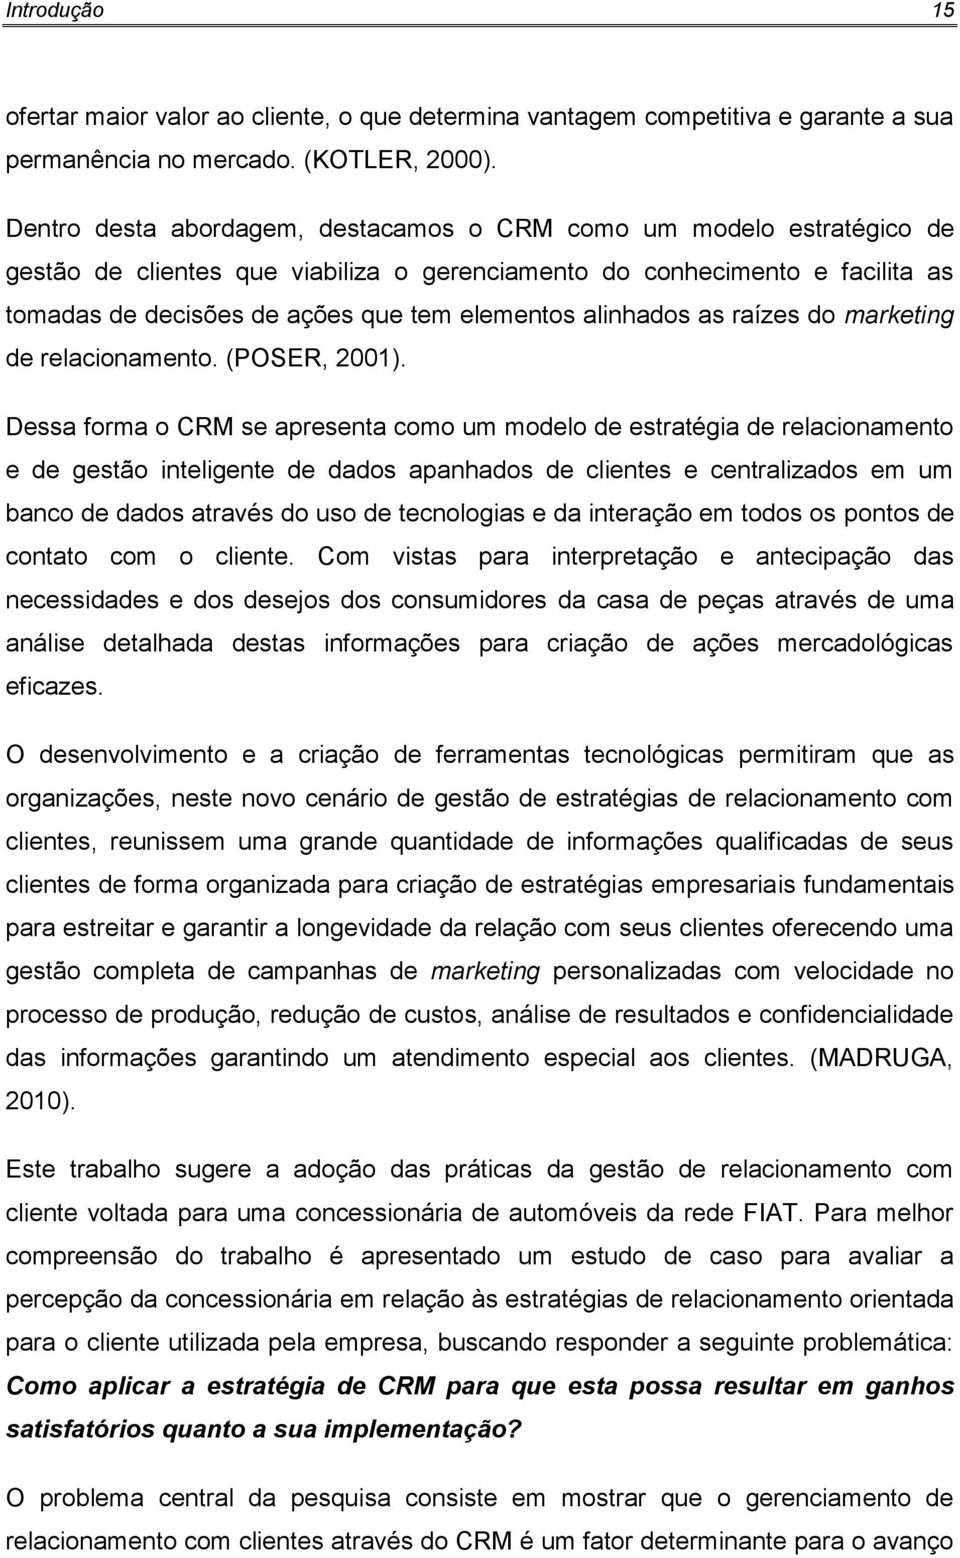 alinhados as raízes do marketing de relacionamento. (POSER, 2001).